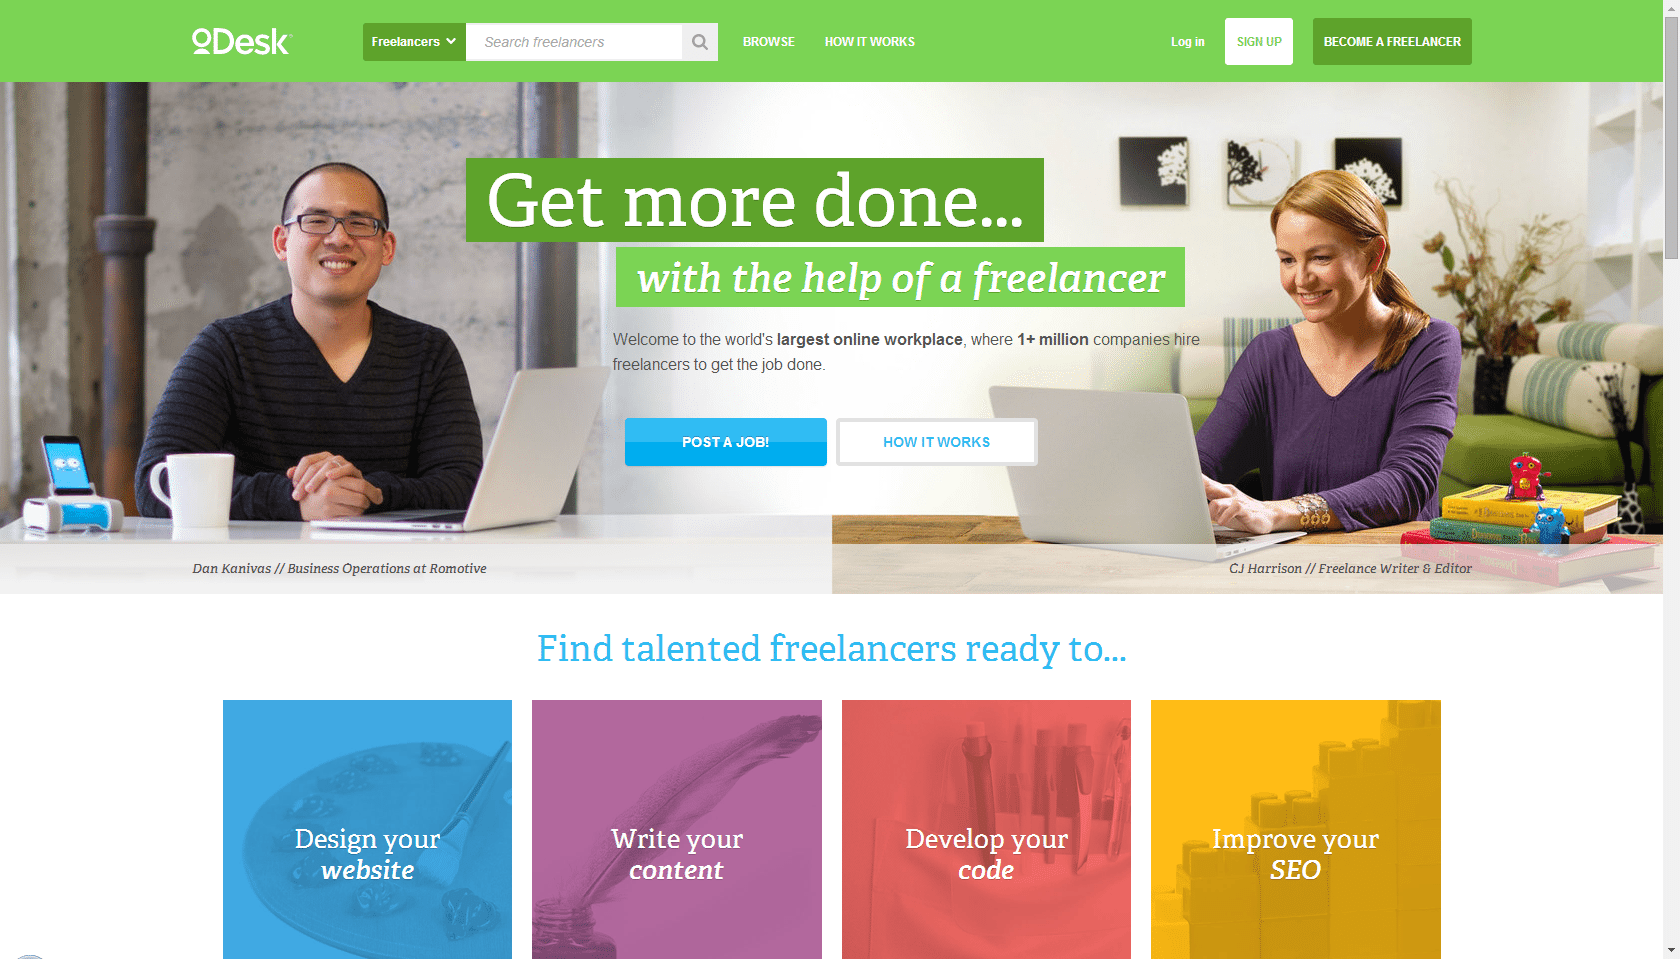 Paying Bills As A Start-Up Founder: Freelancing - oDesk